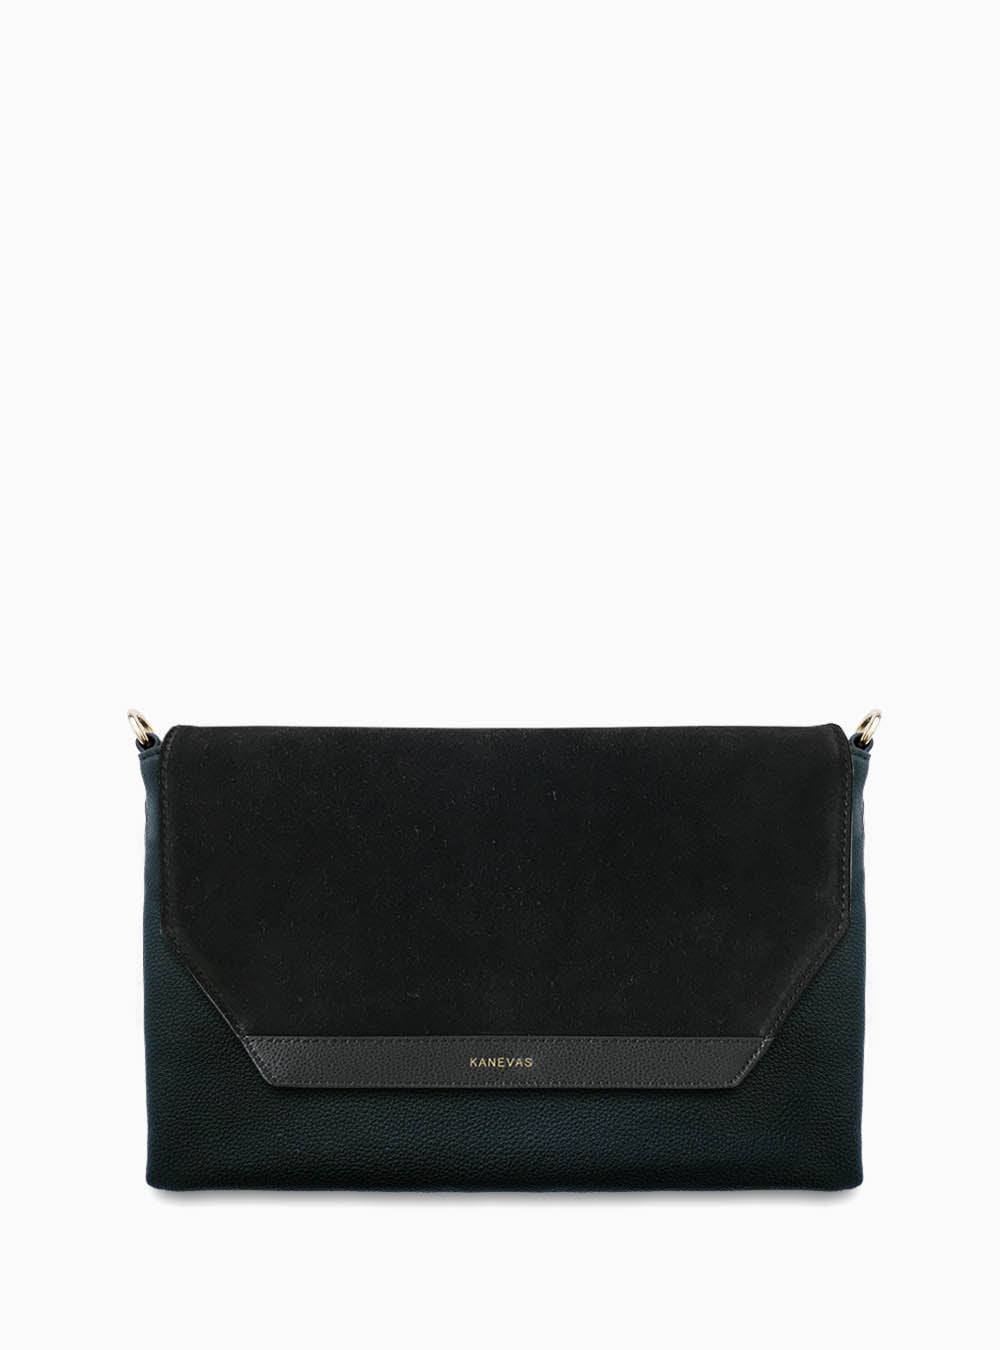 Flap - Suede black